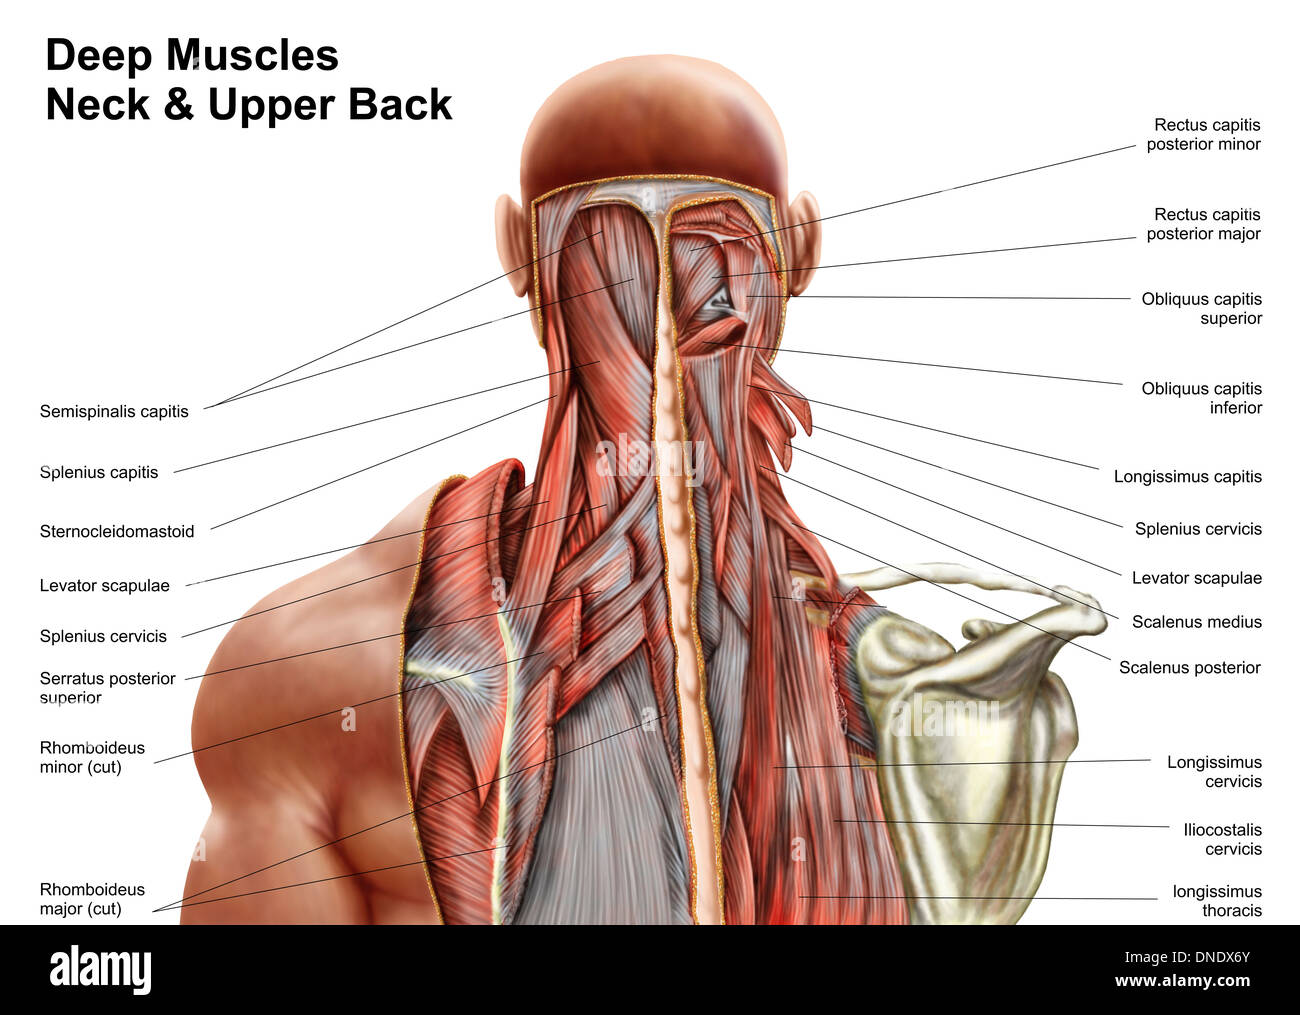 Upper Body Anatomy Artwork Stock Photos & Upper Body Anatomy Artwork ...